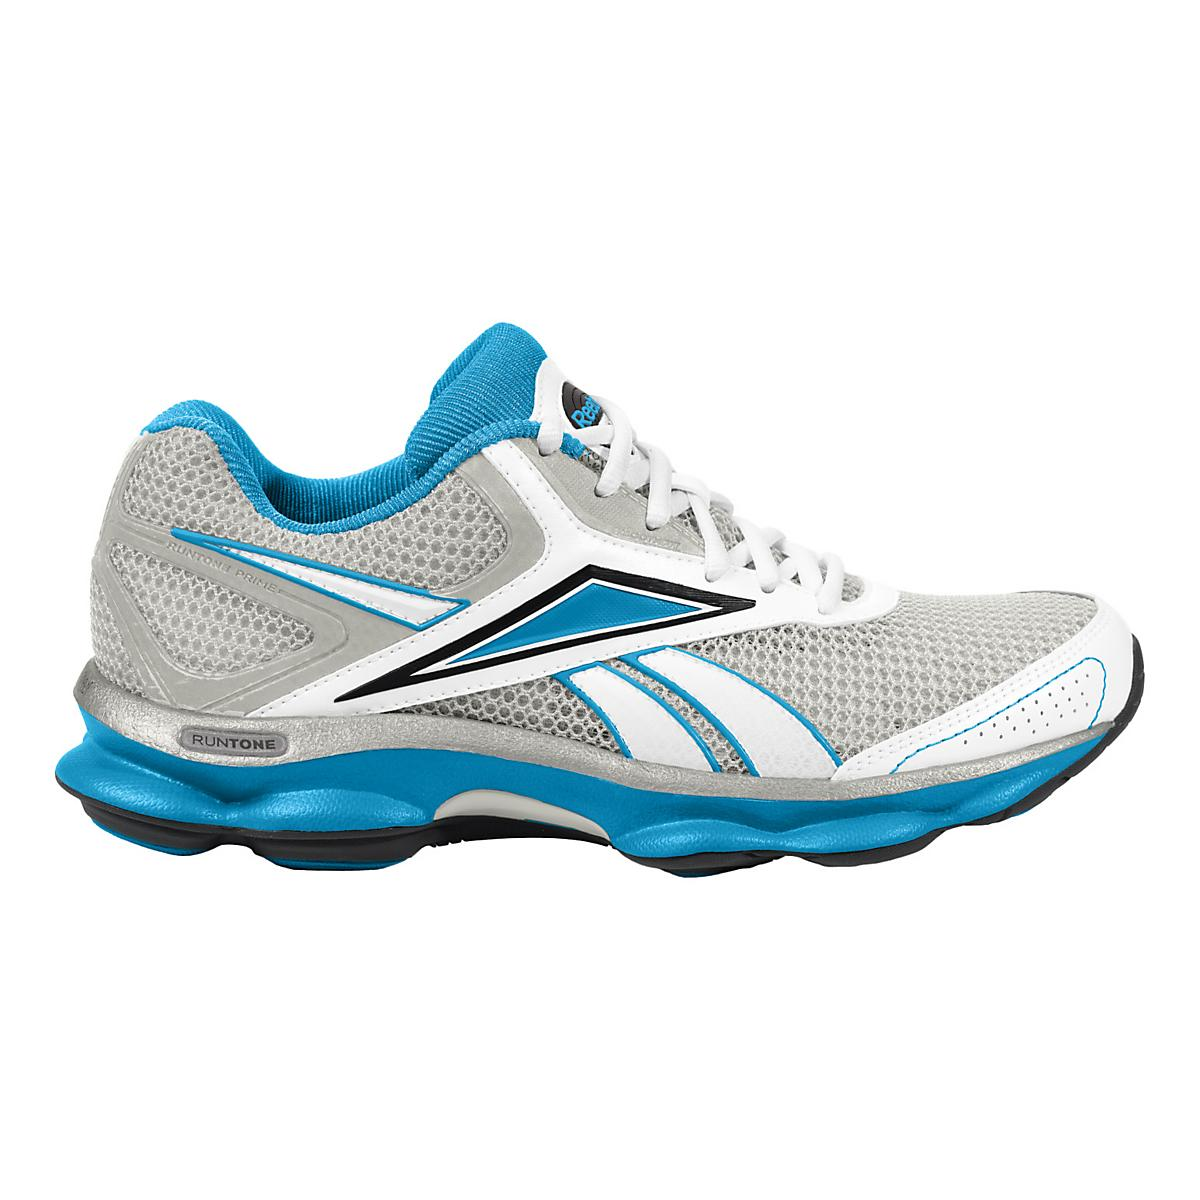 e5202495b1ea Womens Reebok RunTone Prime Toning   Fitness Shoe at Road Runner Sports